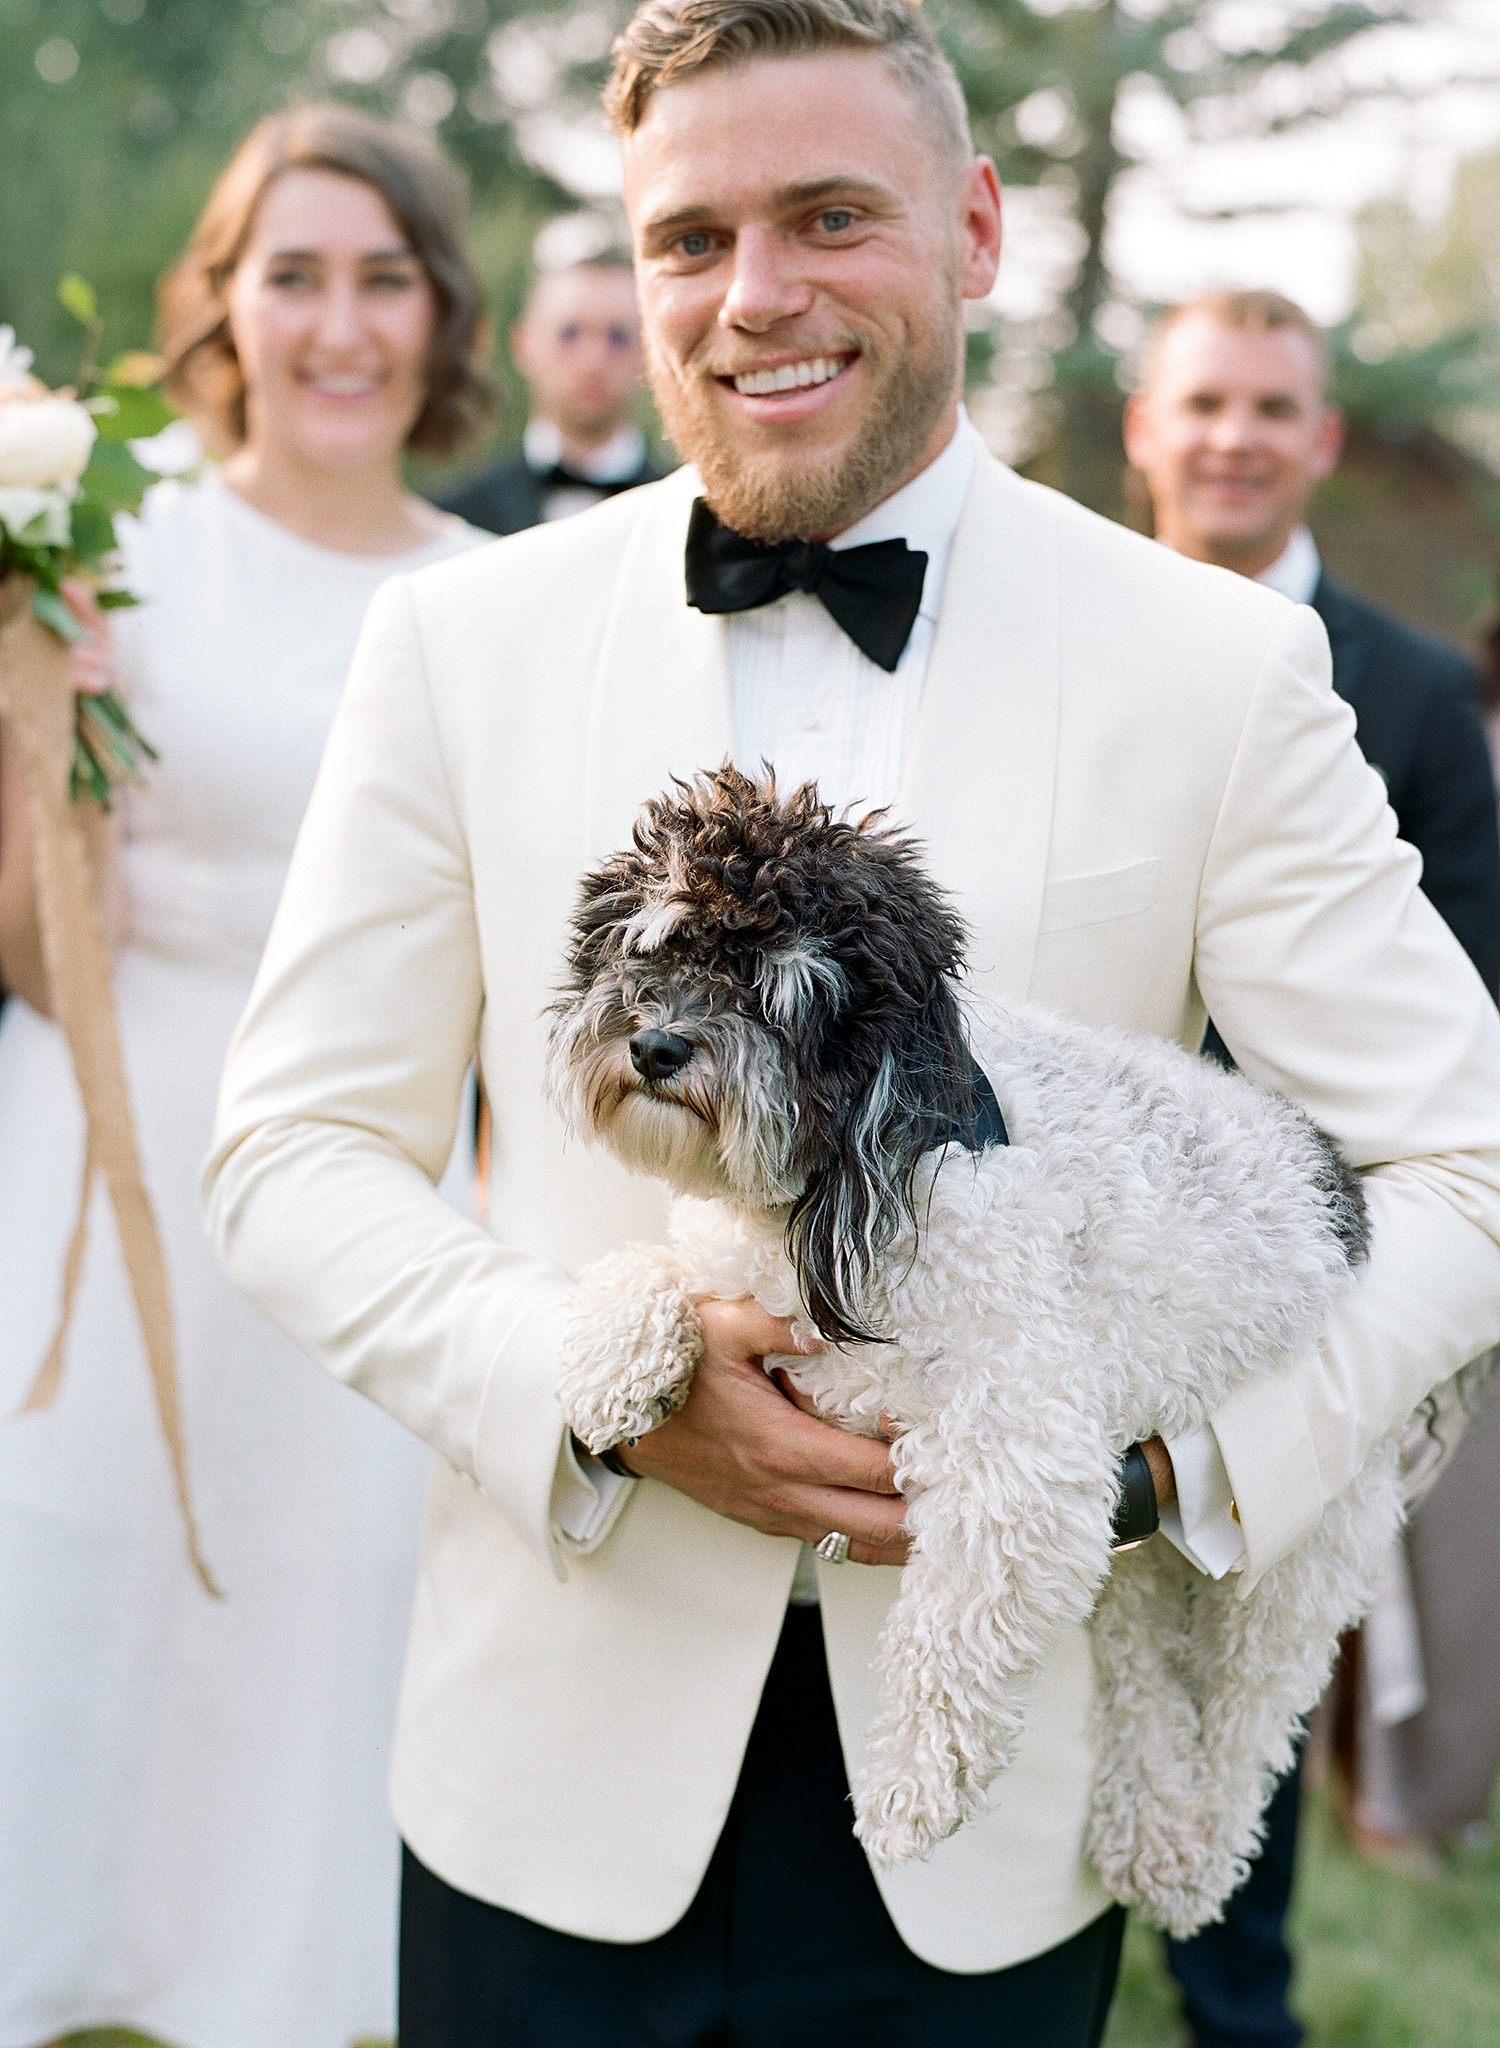 kaitlin jeremy wedding officiant with dog